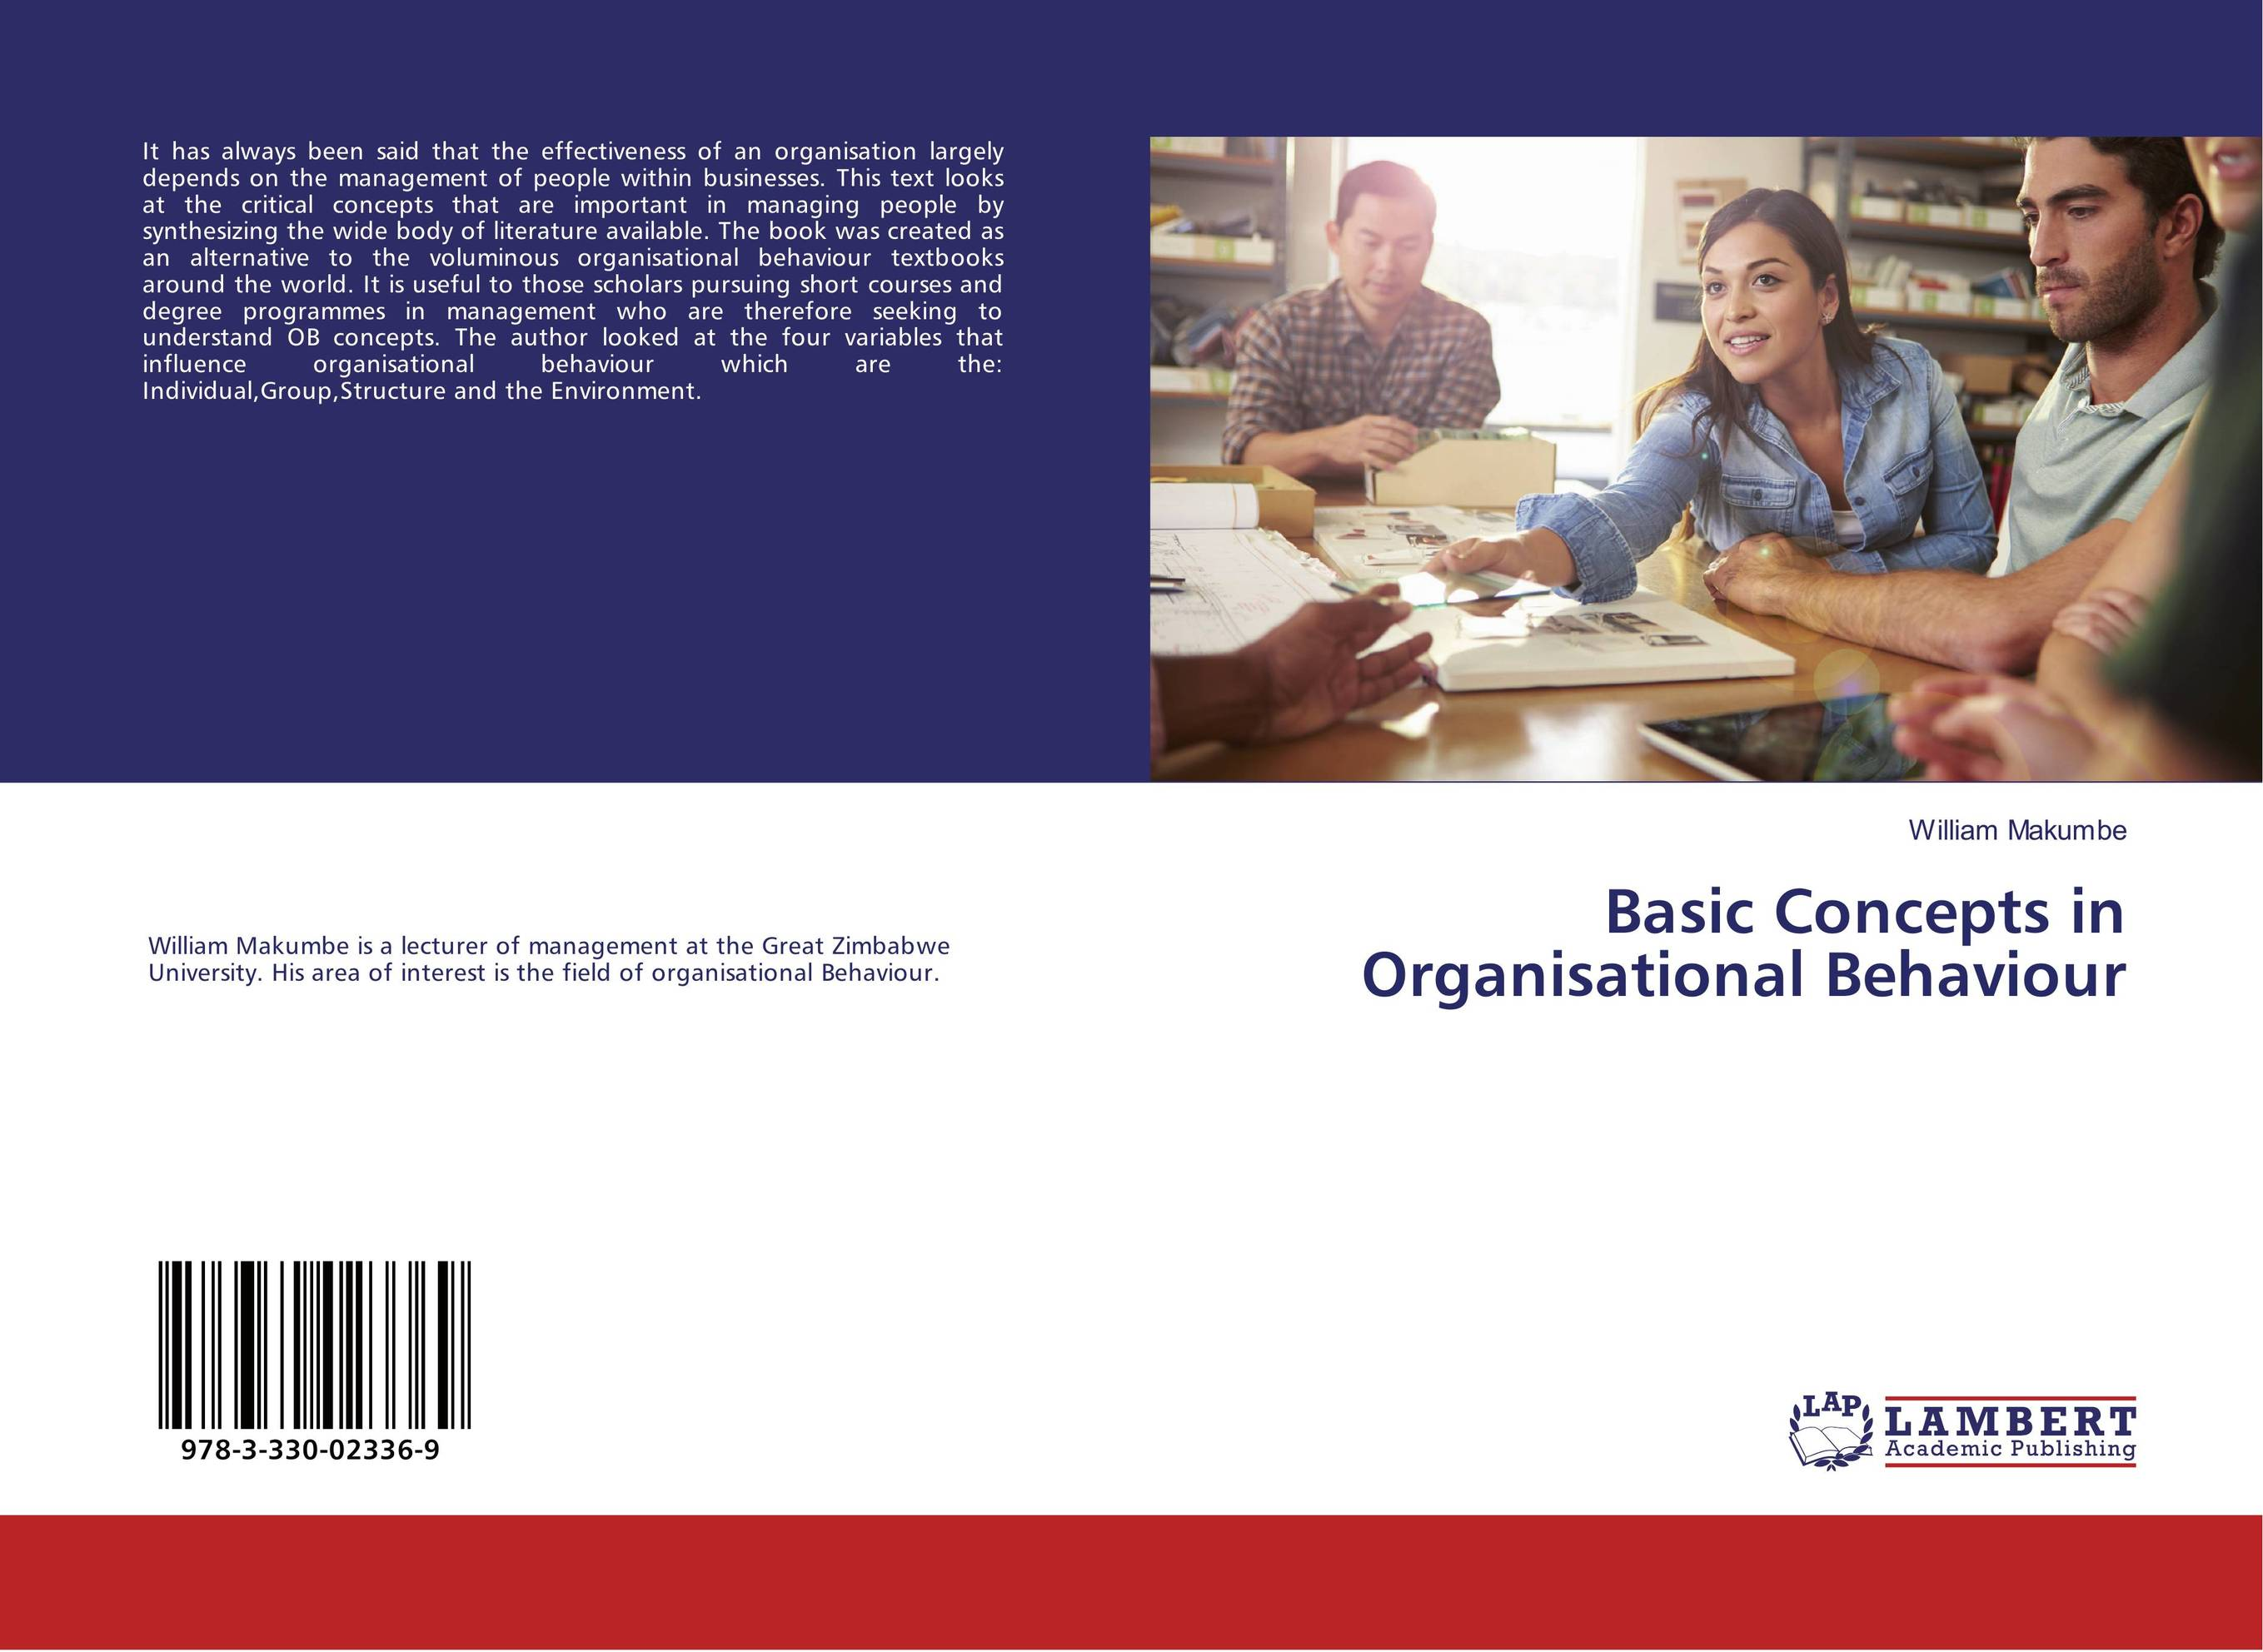 organisation behaviour is a very important concept of effective management Of management in an organization effective a concept in organizational behavior which an important concept in organizations which.